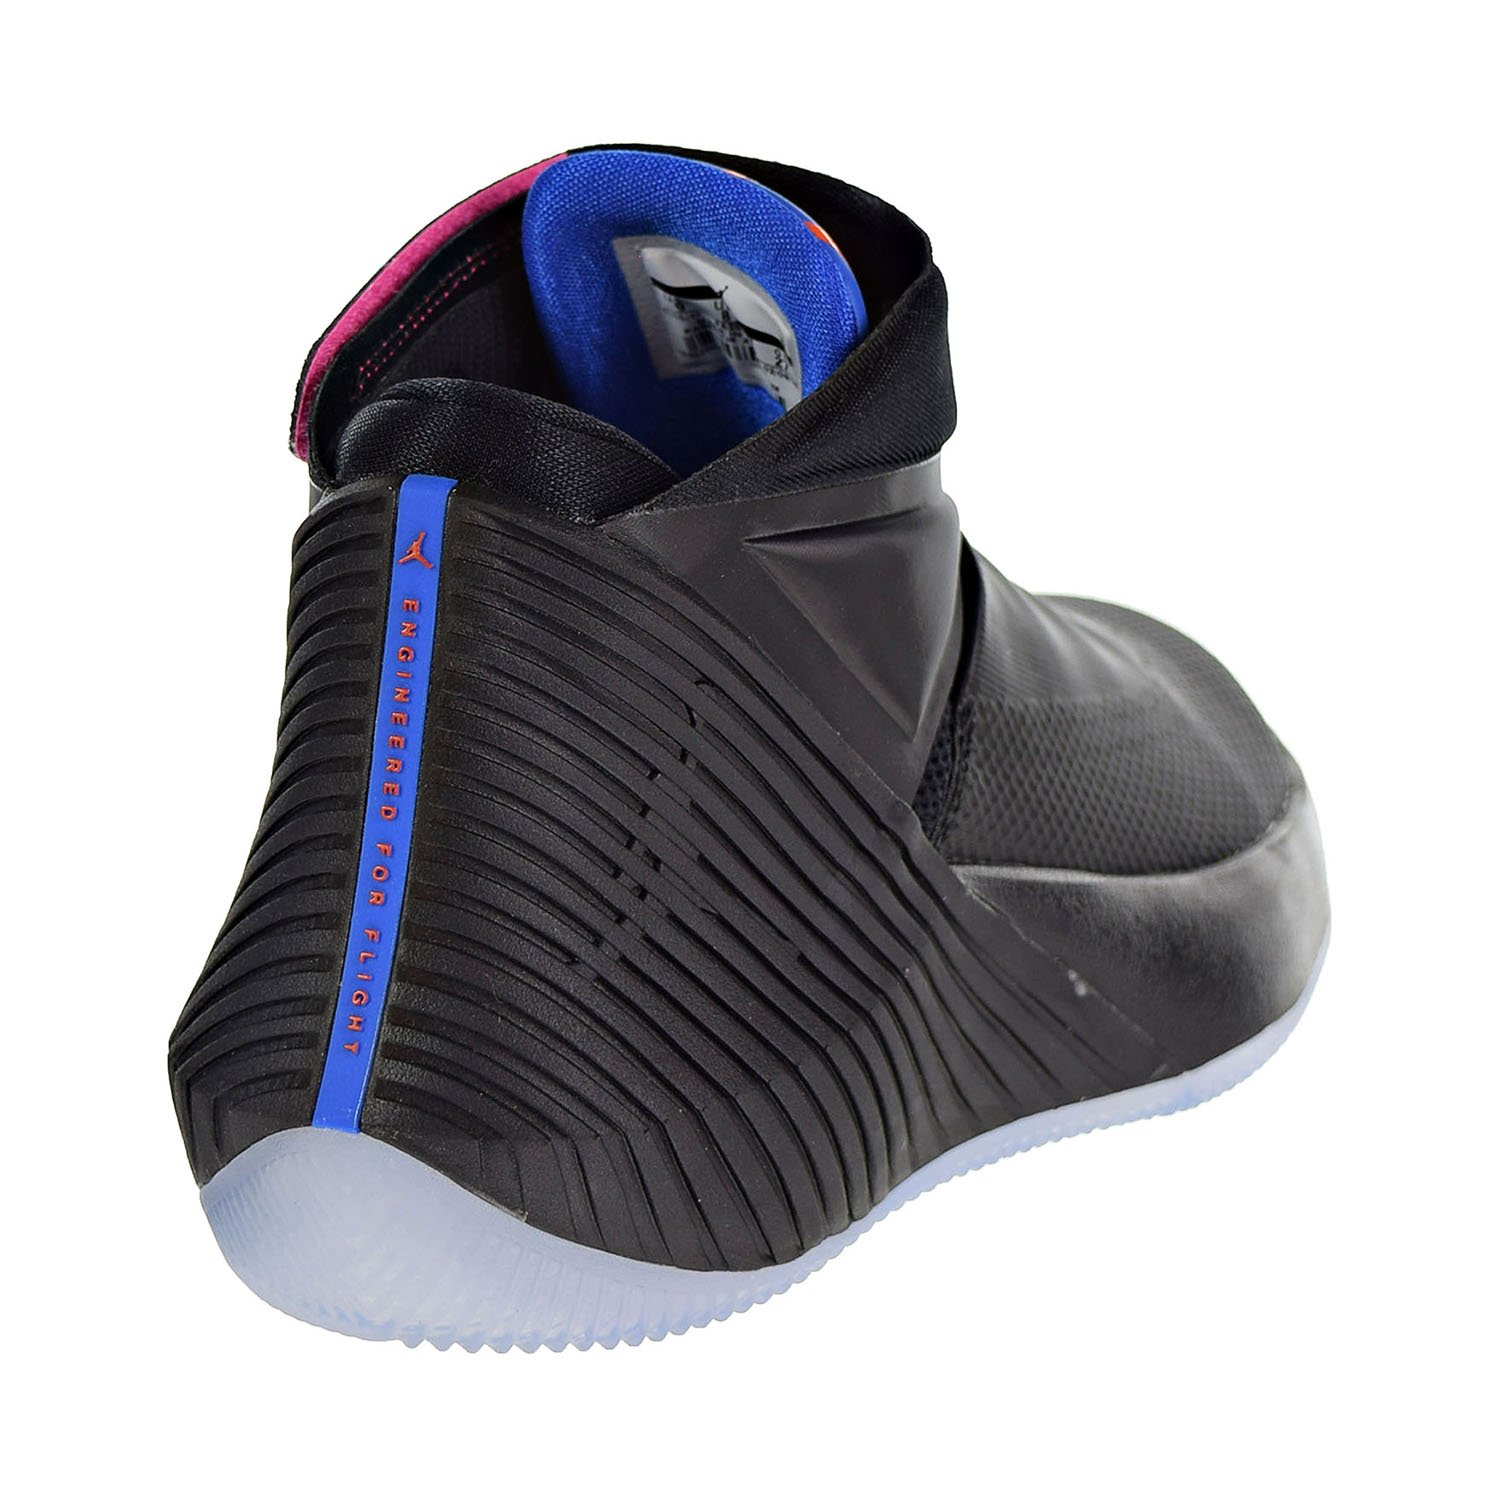 online store 656ba d71c5 Amazon.com   Nike Jordan Men s Why Not Zer0.1 Basketball Shoes   Basketball